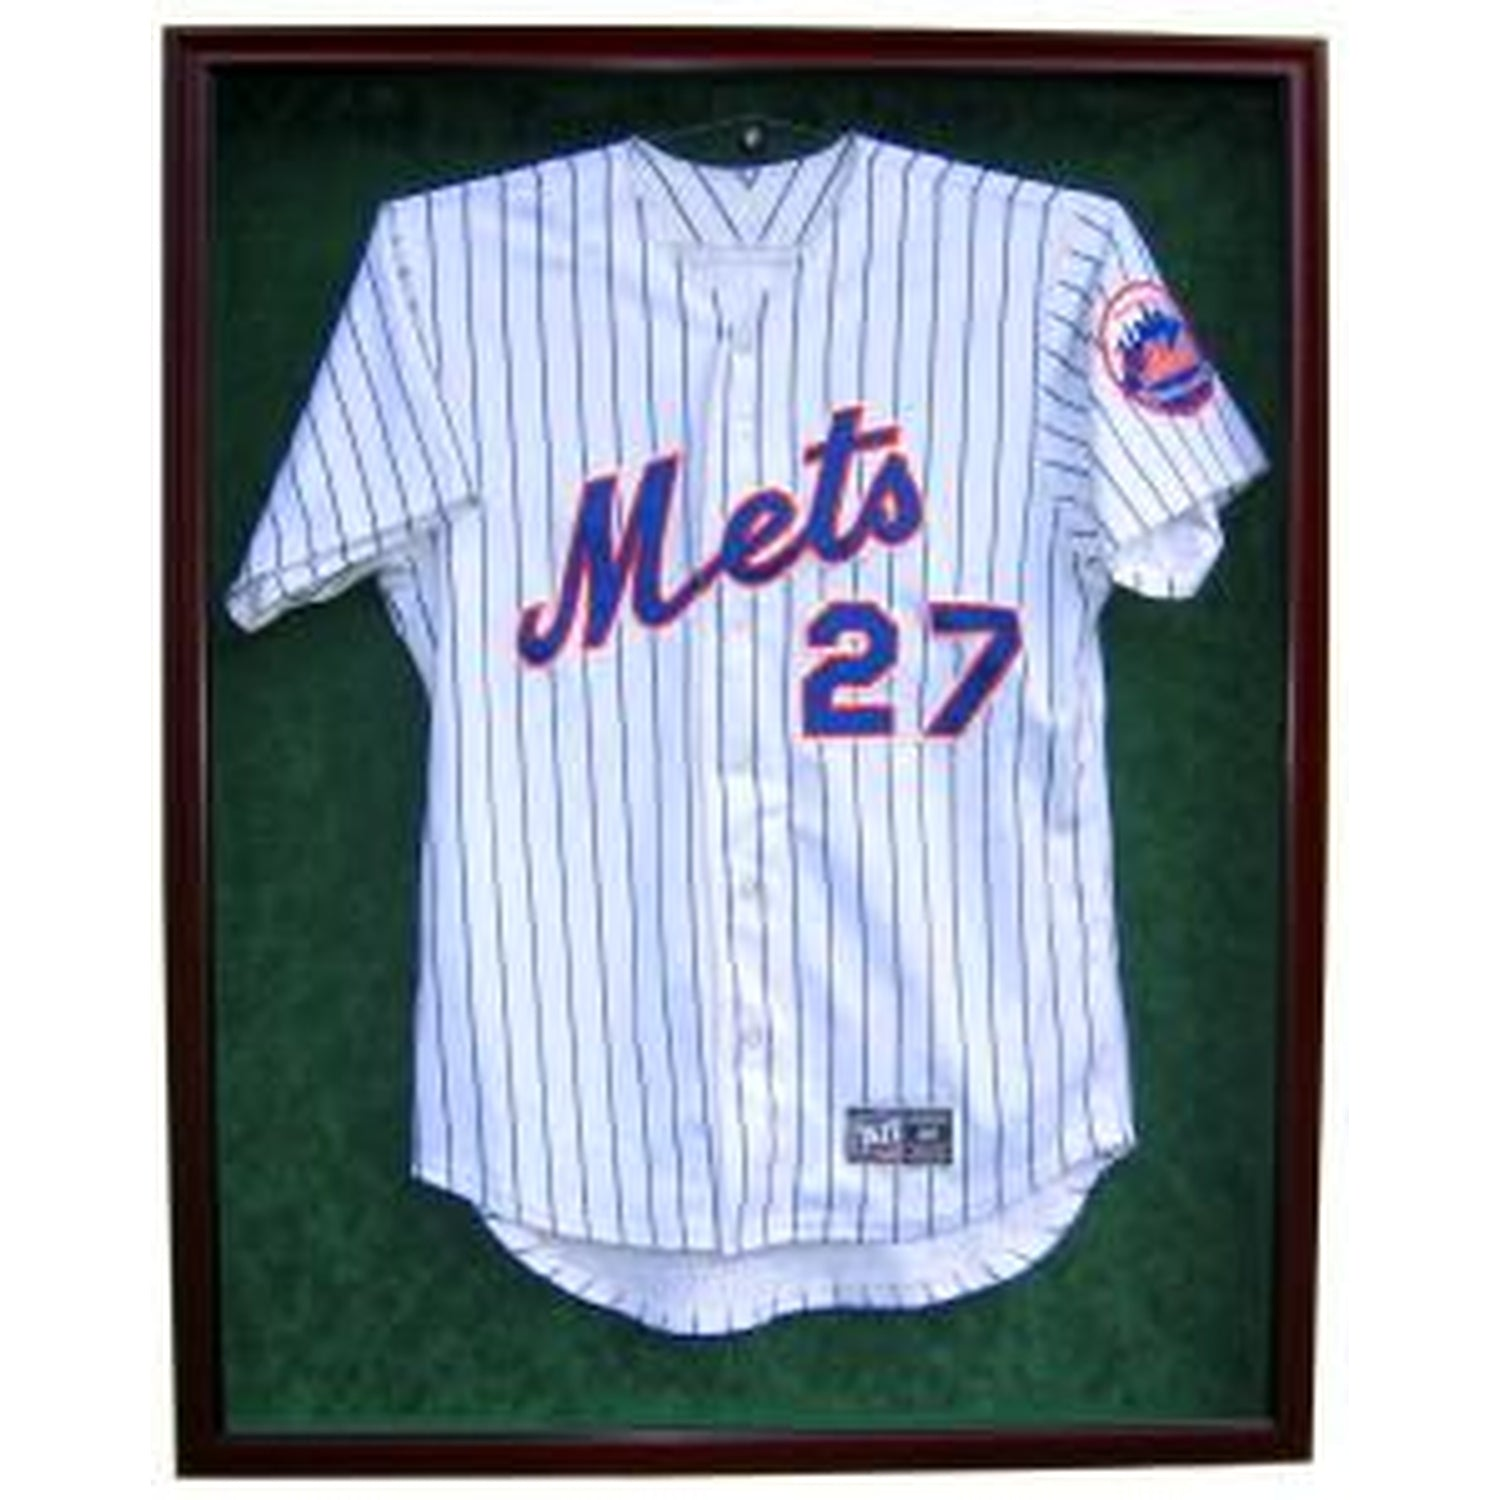 Jersey Custom Framed Display Case-Powers Sports Memorabilia